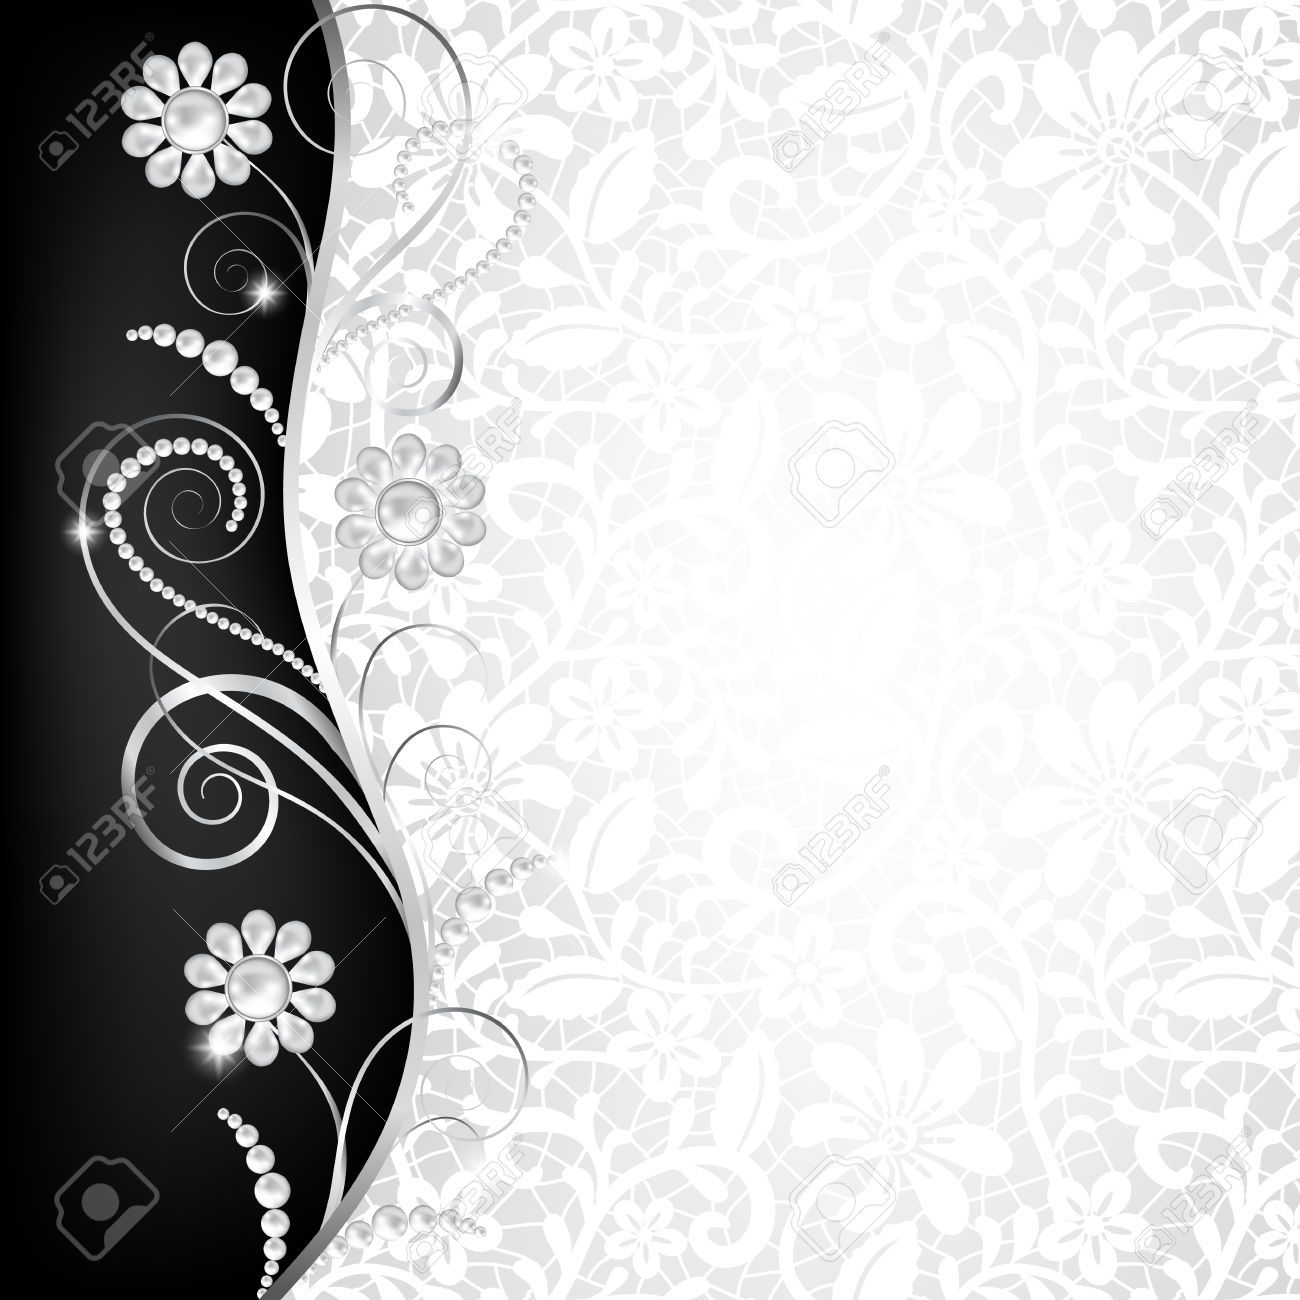 Jewelry Border On White Lace Background Invitation Card Royalty